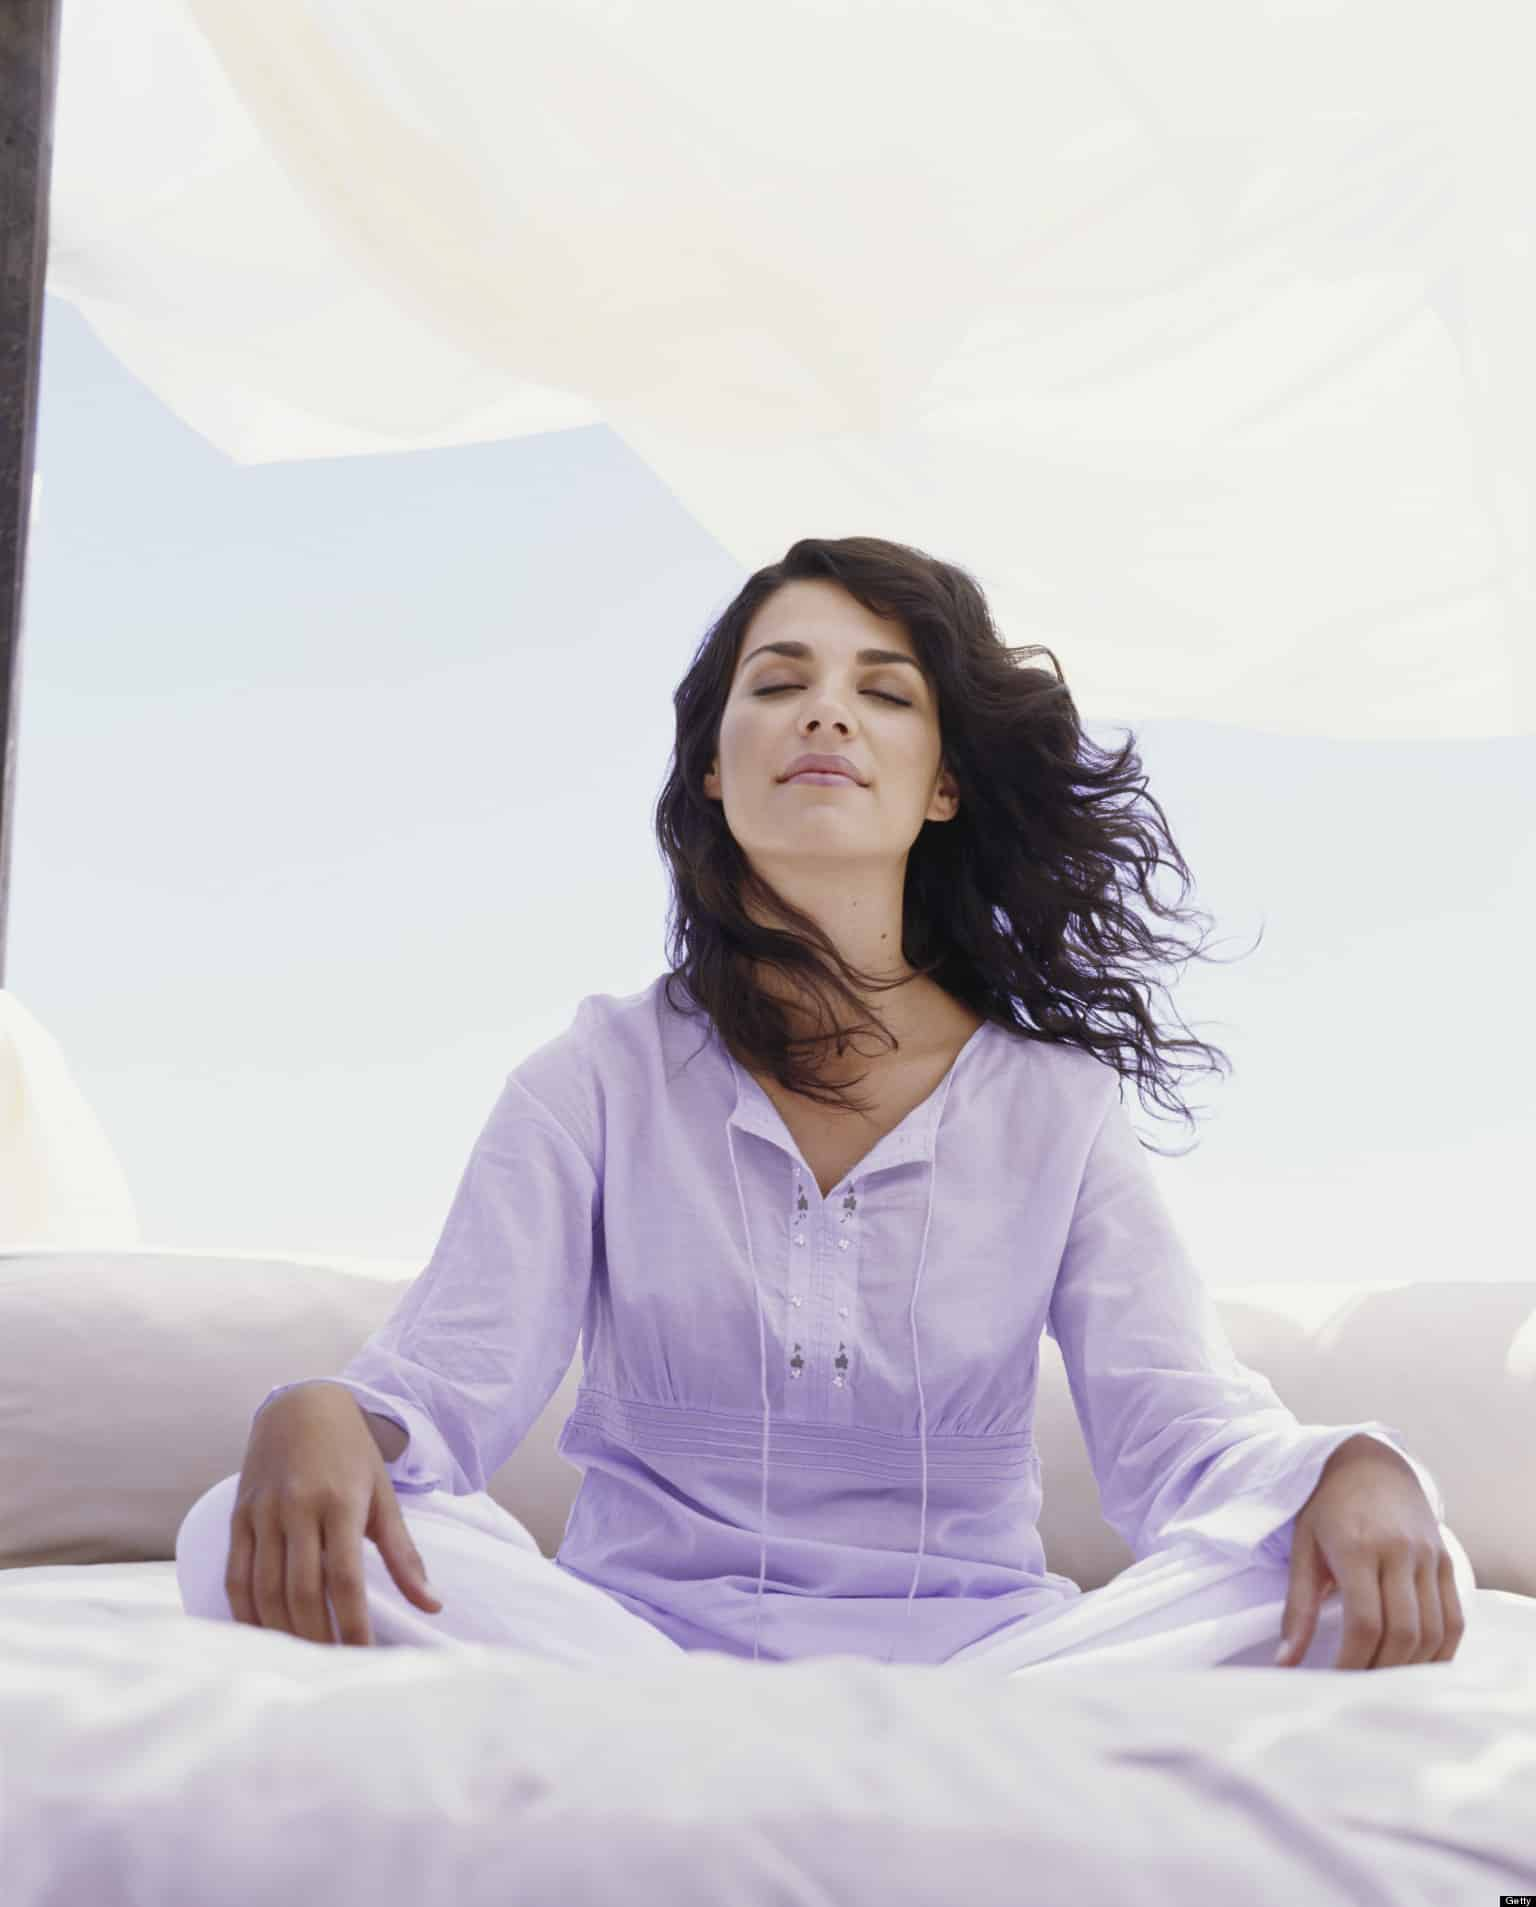 5 Tips To Zen Out & Return To Your Bliss